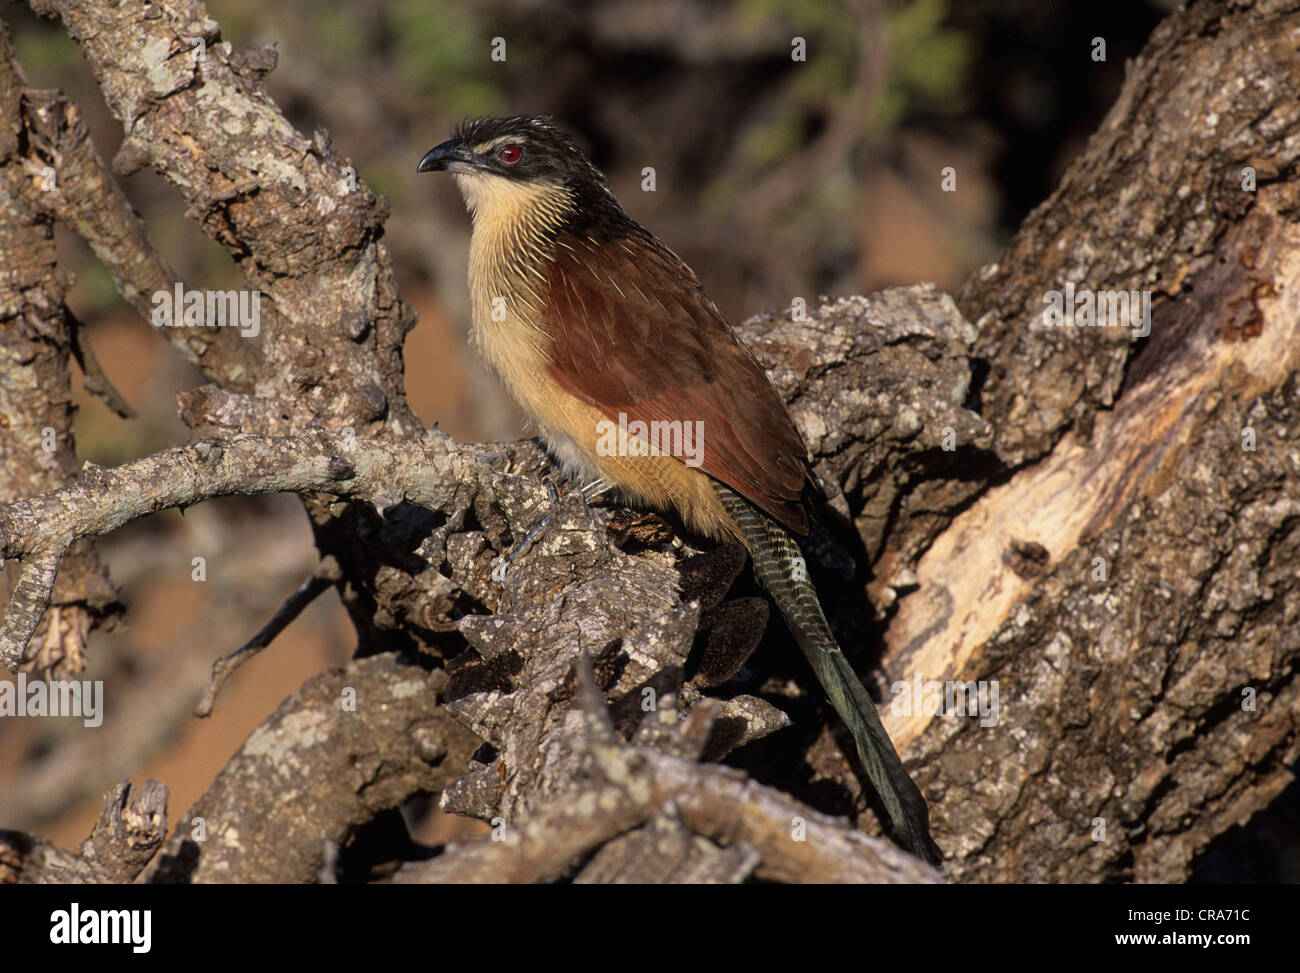 White-browed Coucal (Centropus supercillosus), Mkuze Game Reserve, Zululand, KwaZulu-Natal, South Africa, Africa - Stock Image